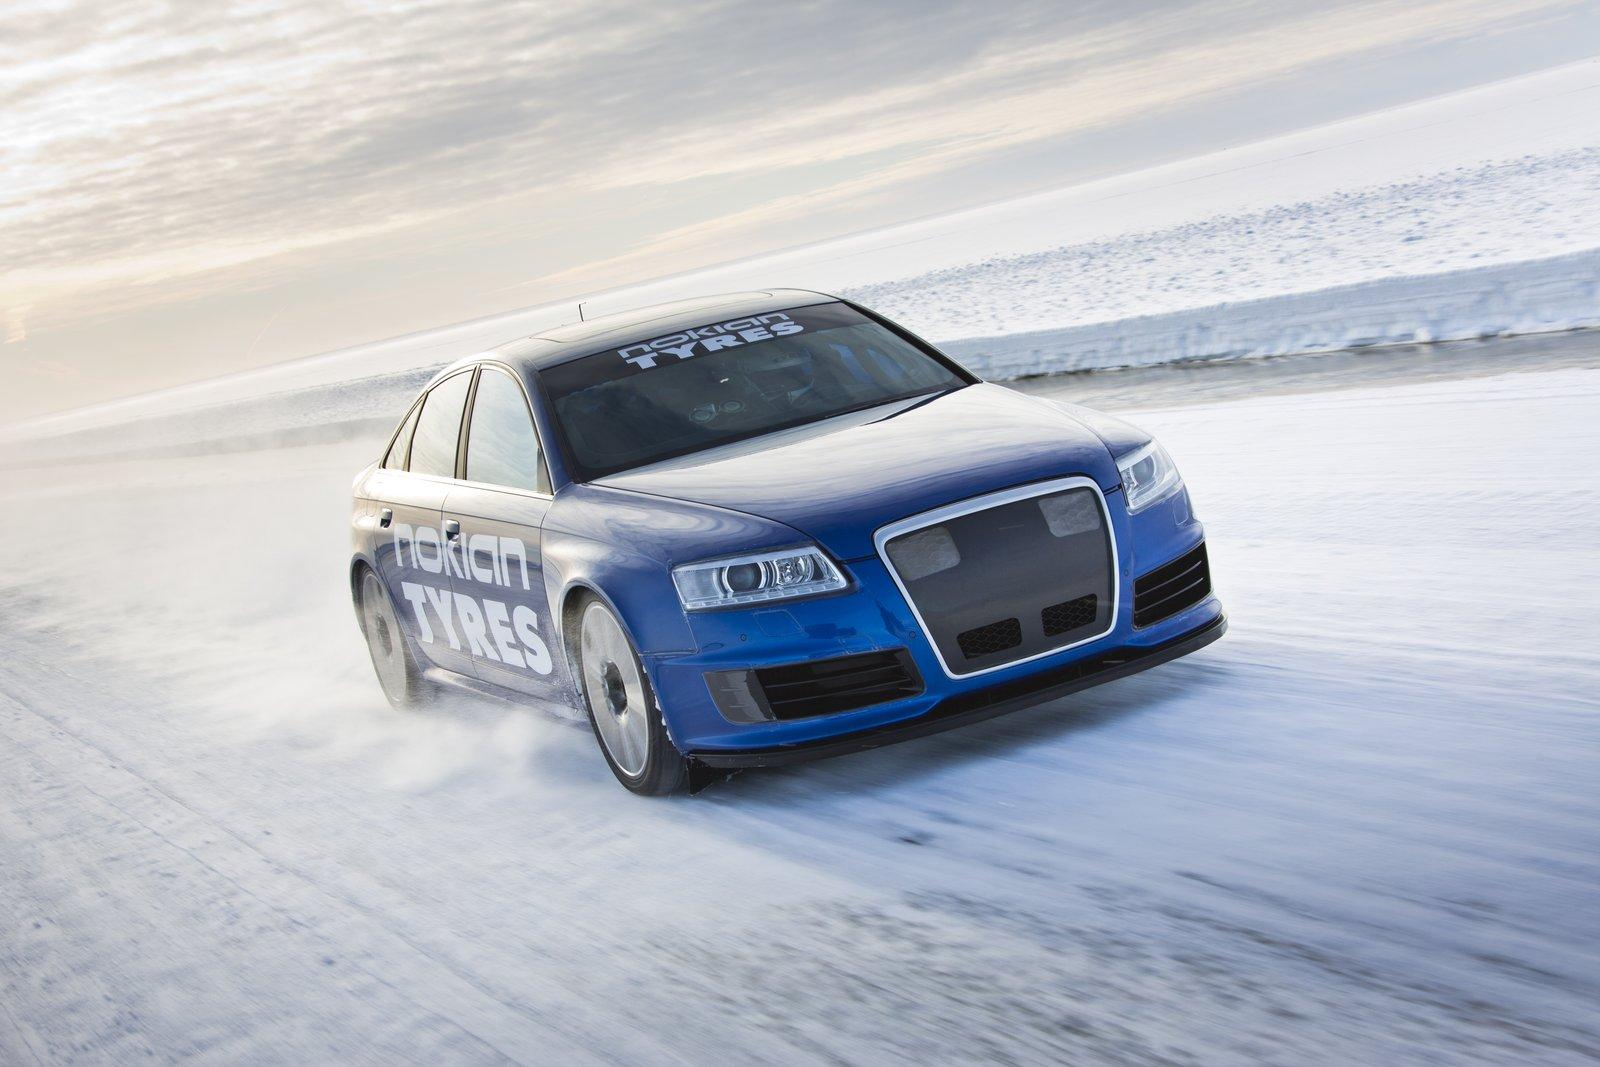 Audi-RS6-ice-world-record-speed-Nokian-tyres